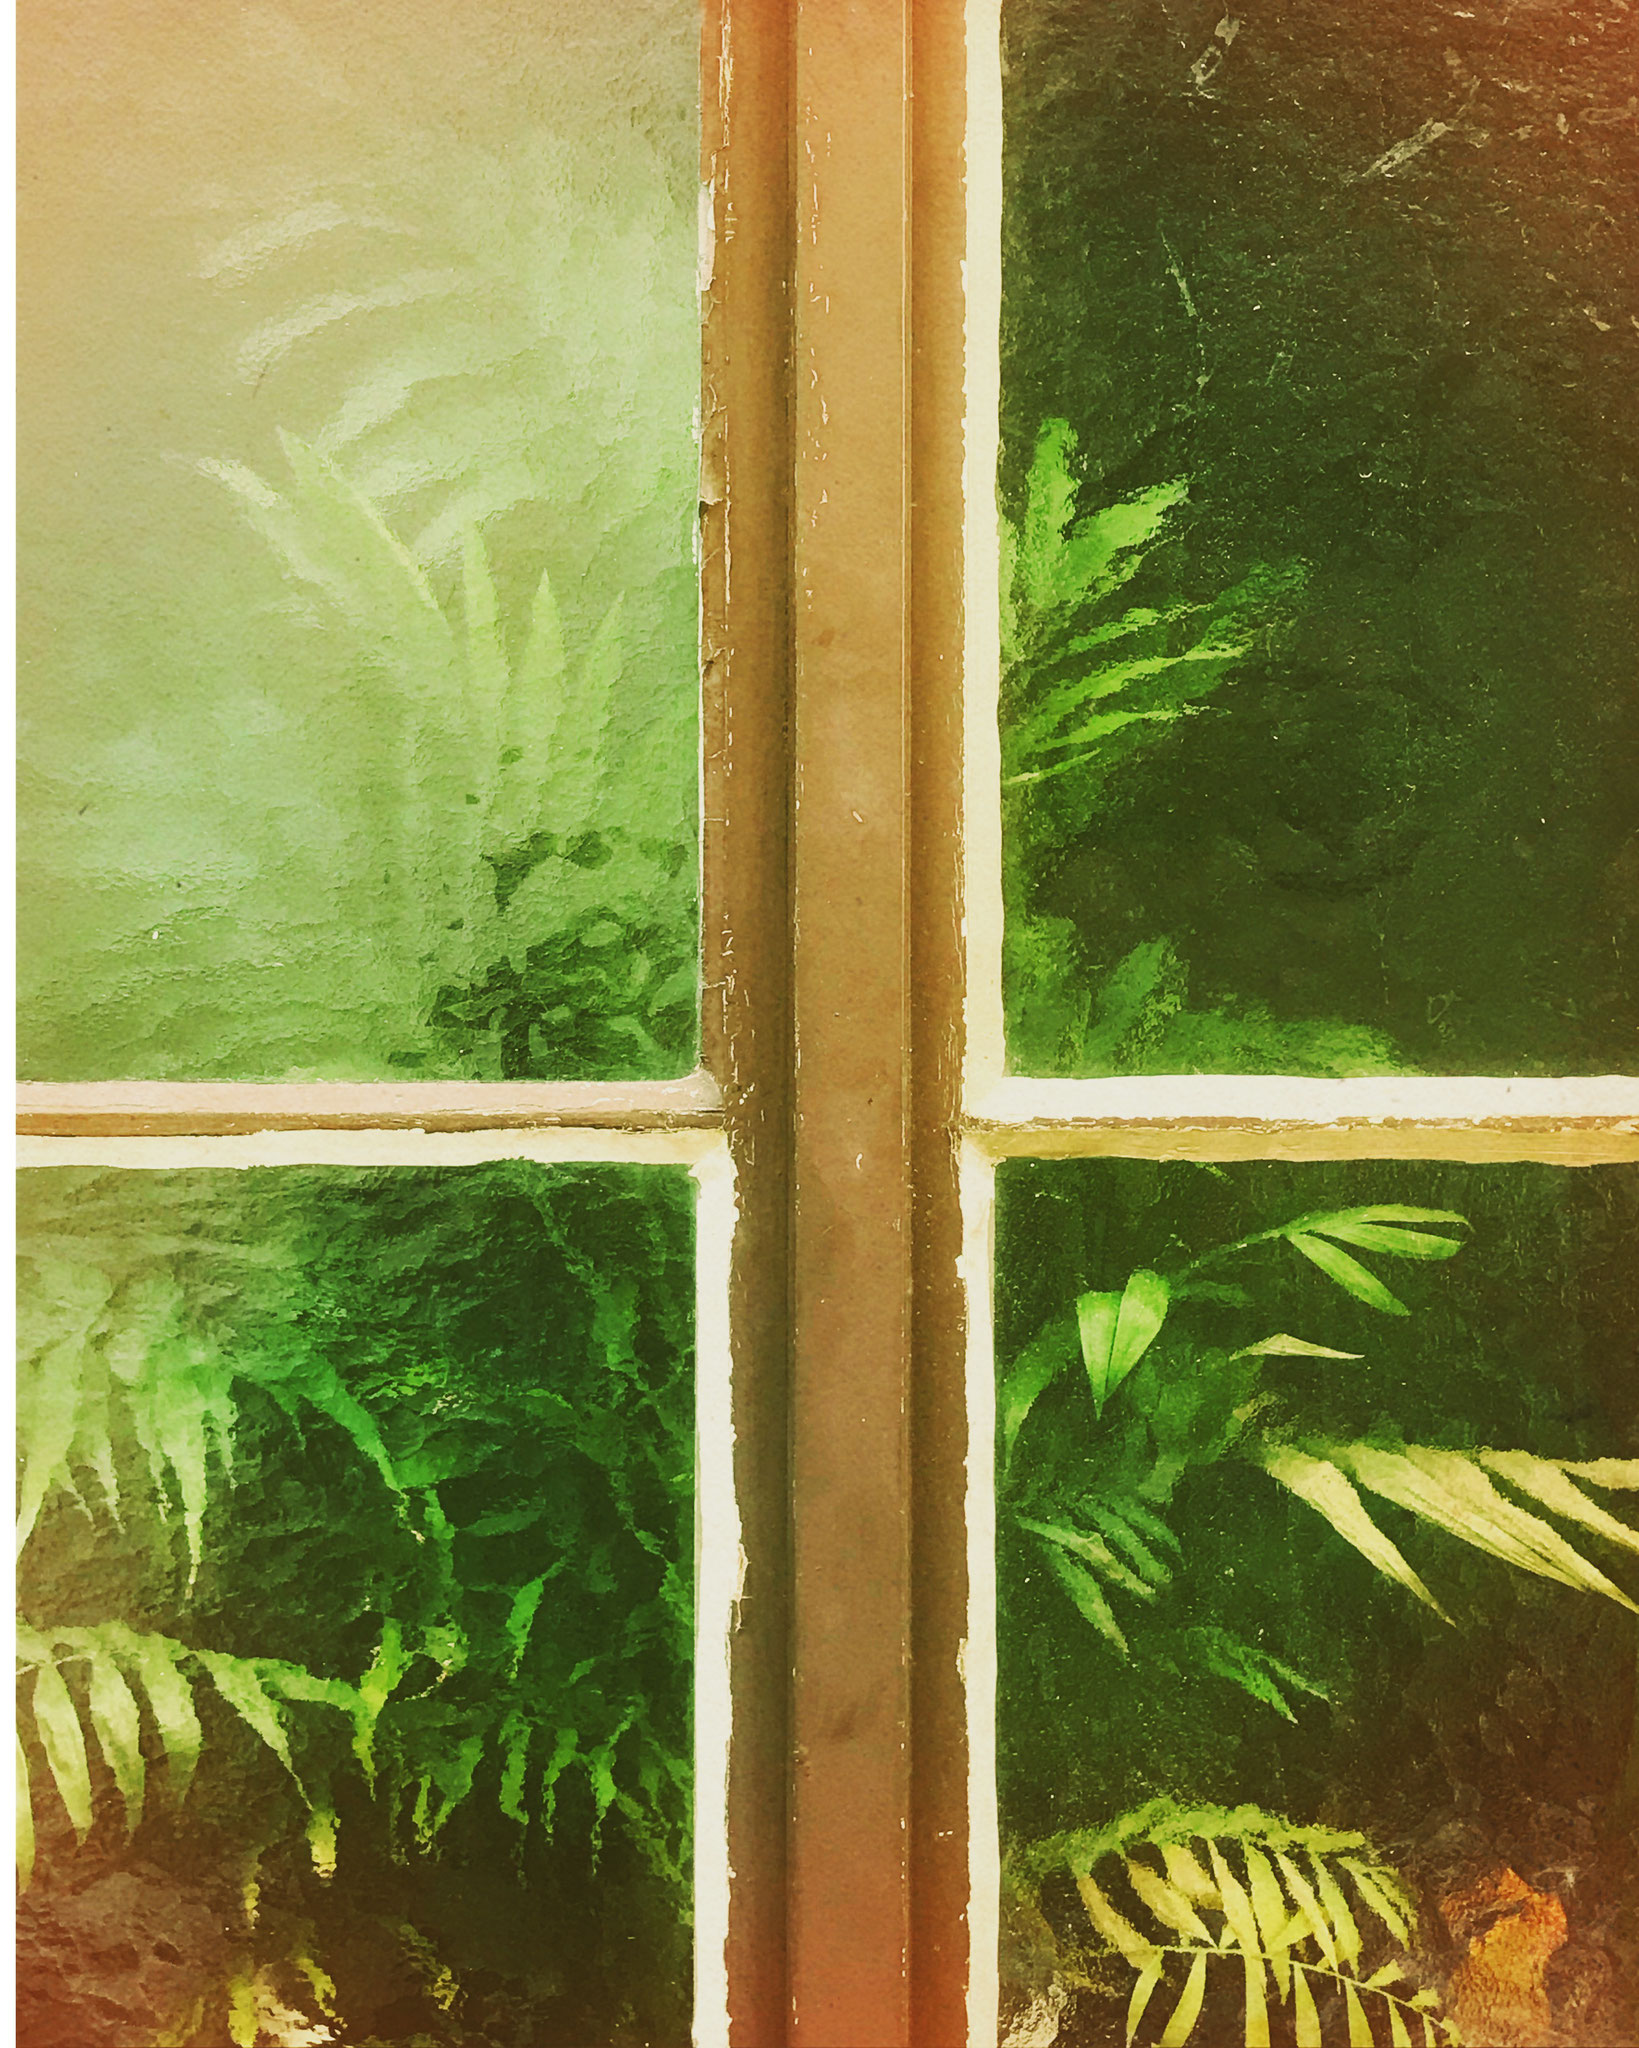 Urban Jungle behind a window